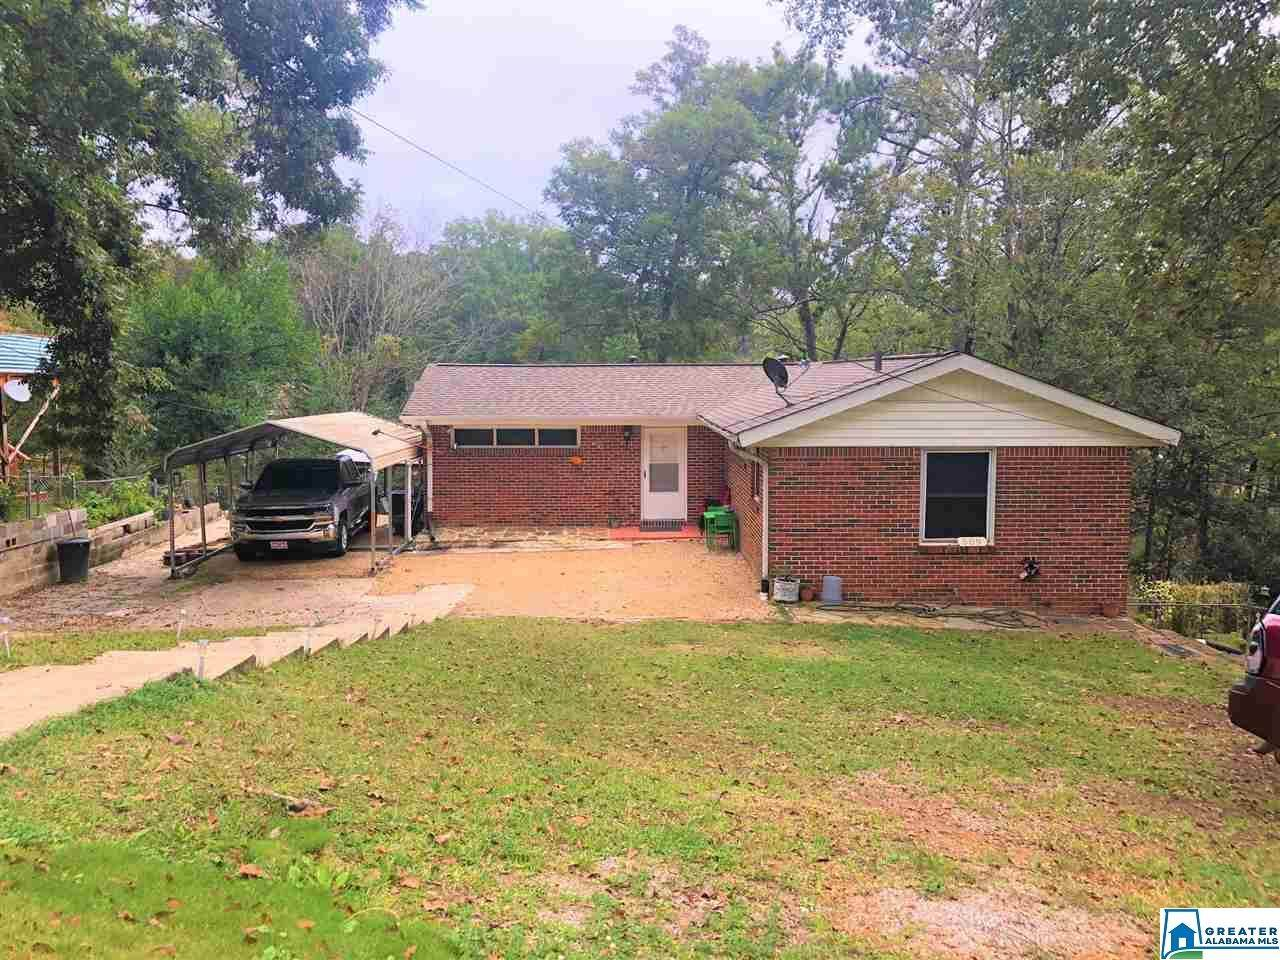 509 Rosewell Ln - Photo 1